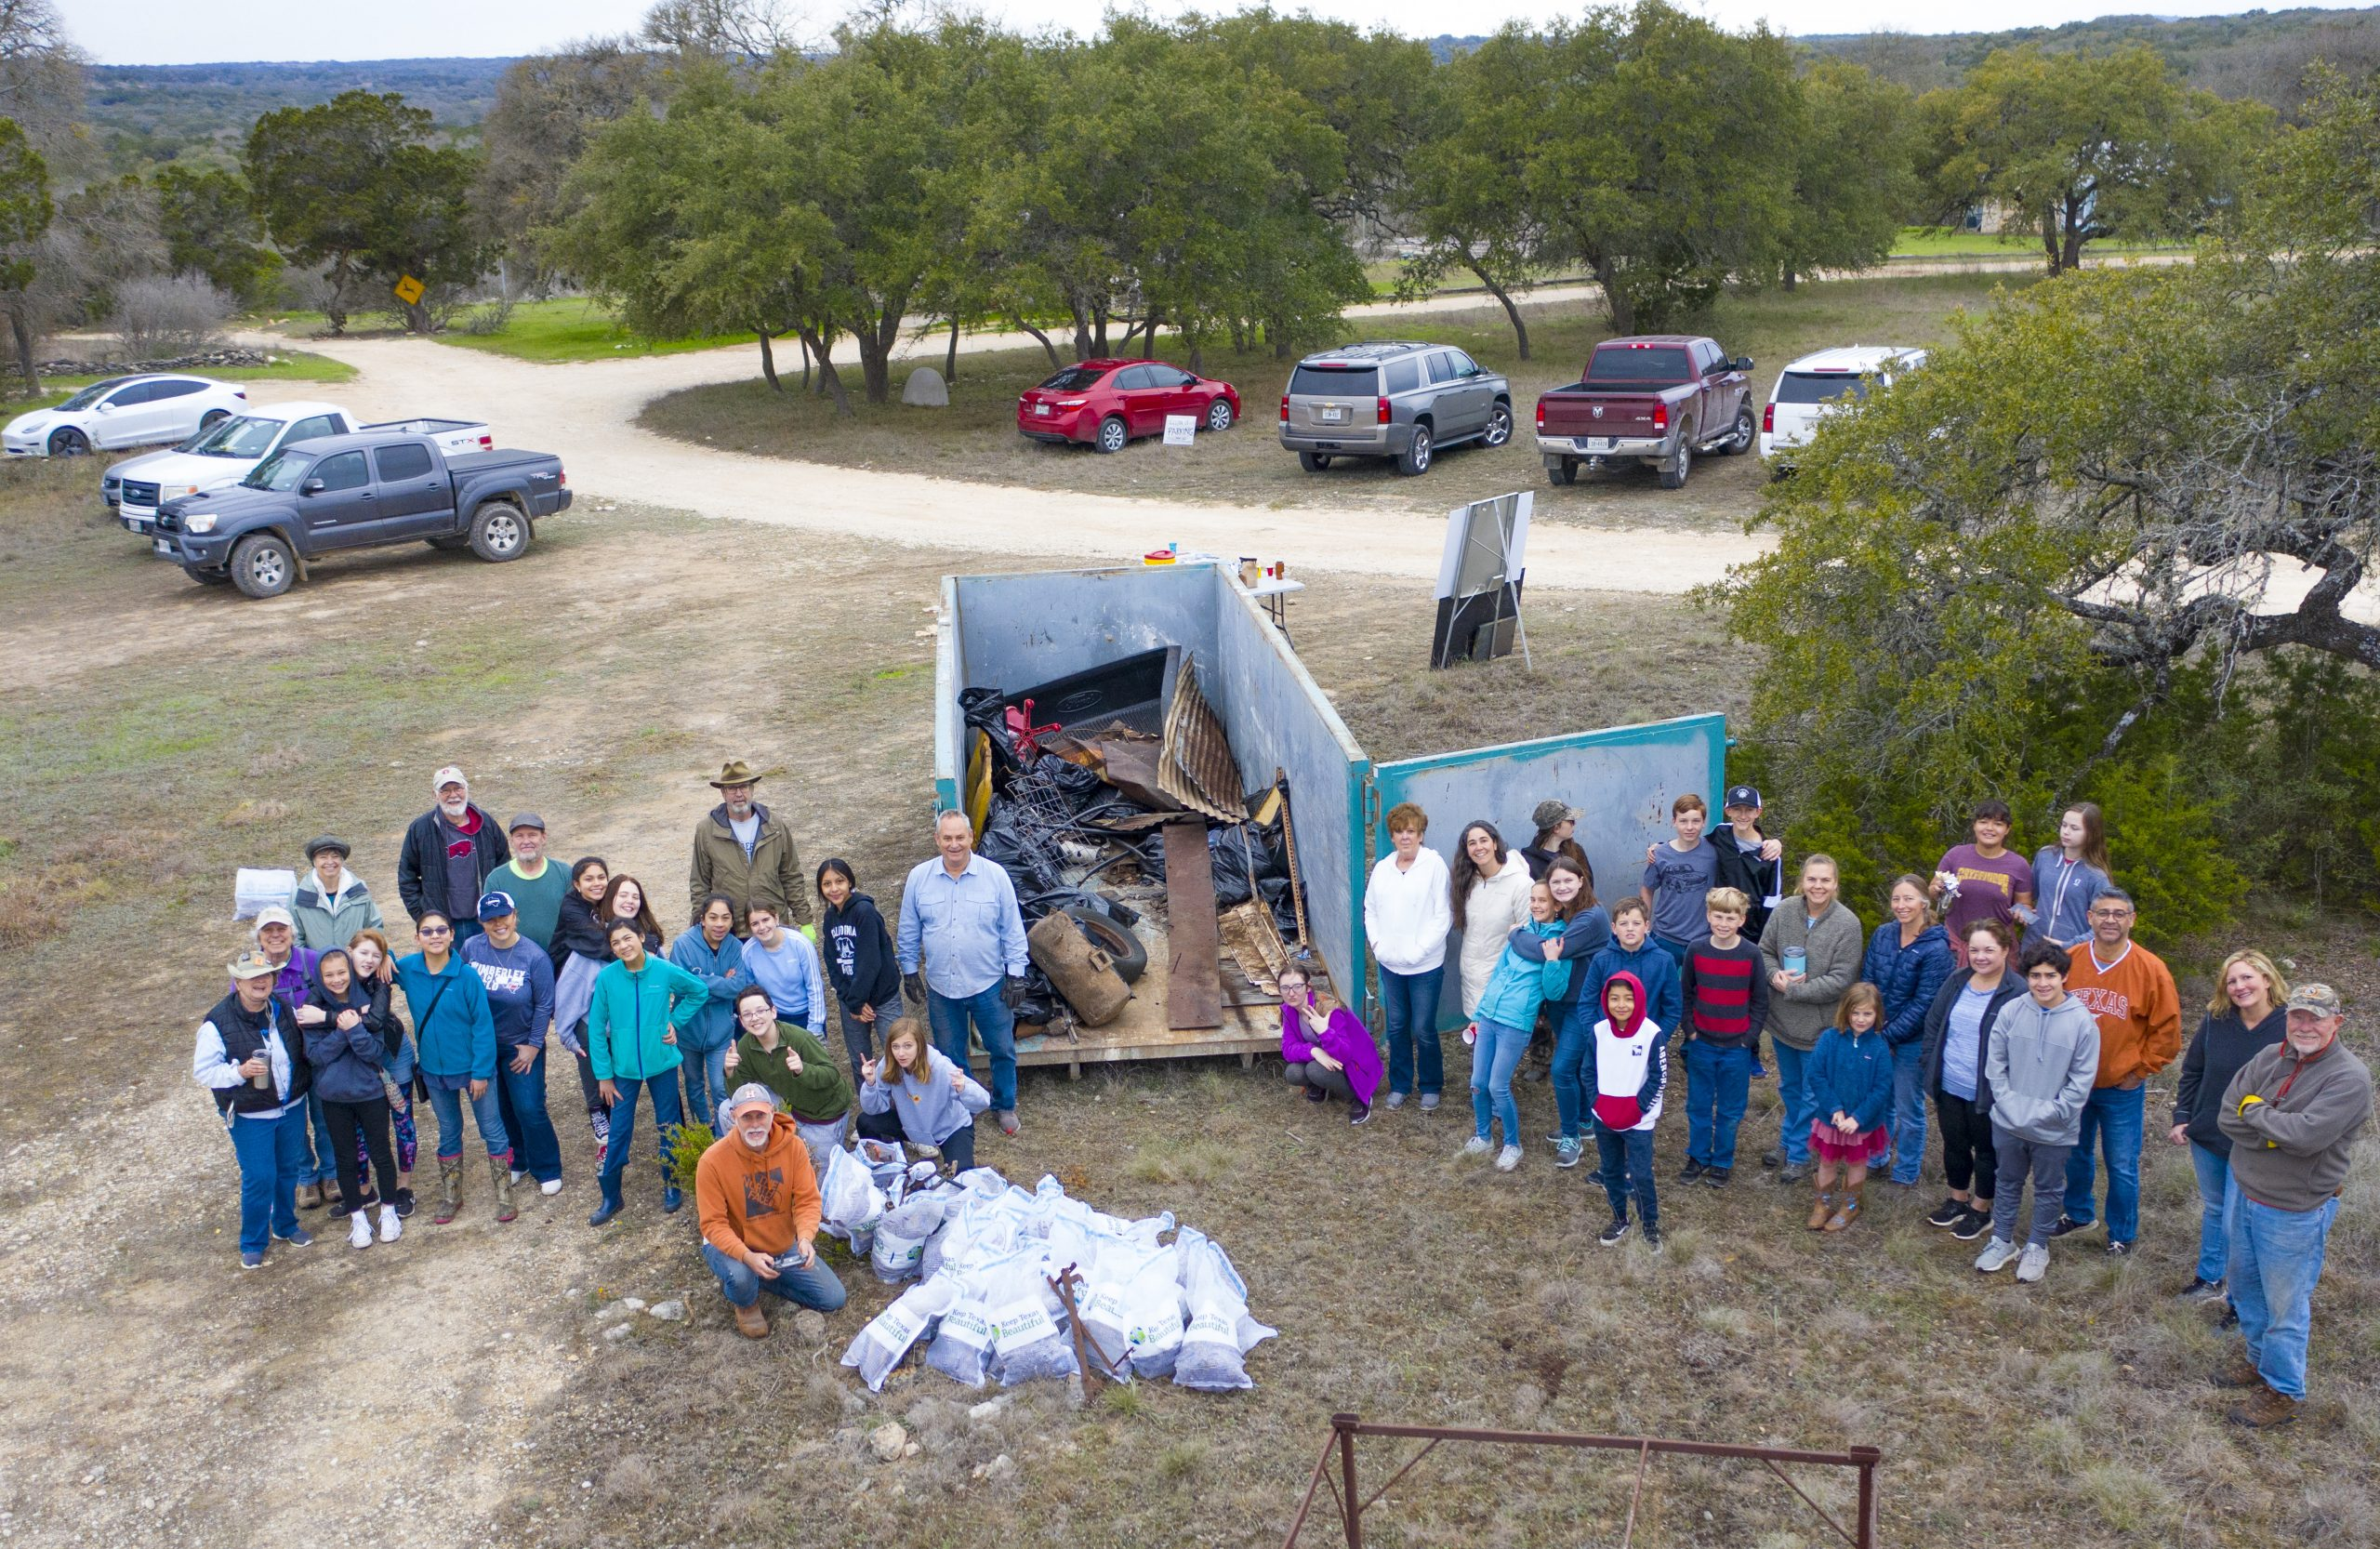 Helping Protect Groundwater Quality – Trash Cleanup at Coleman's Canyon